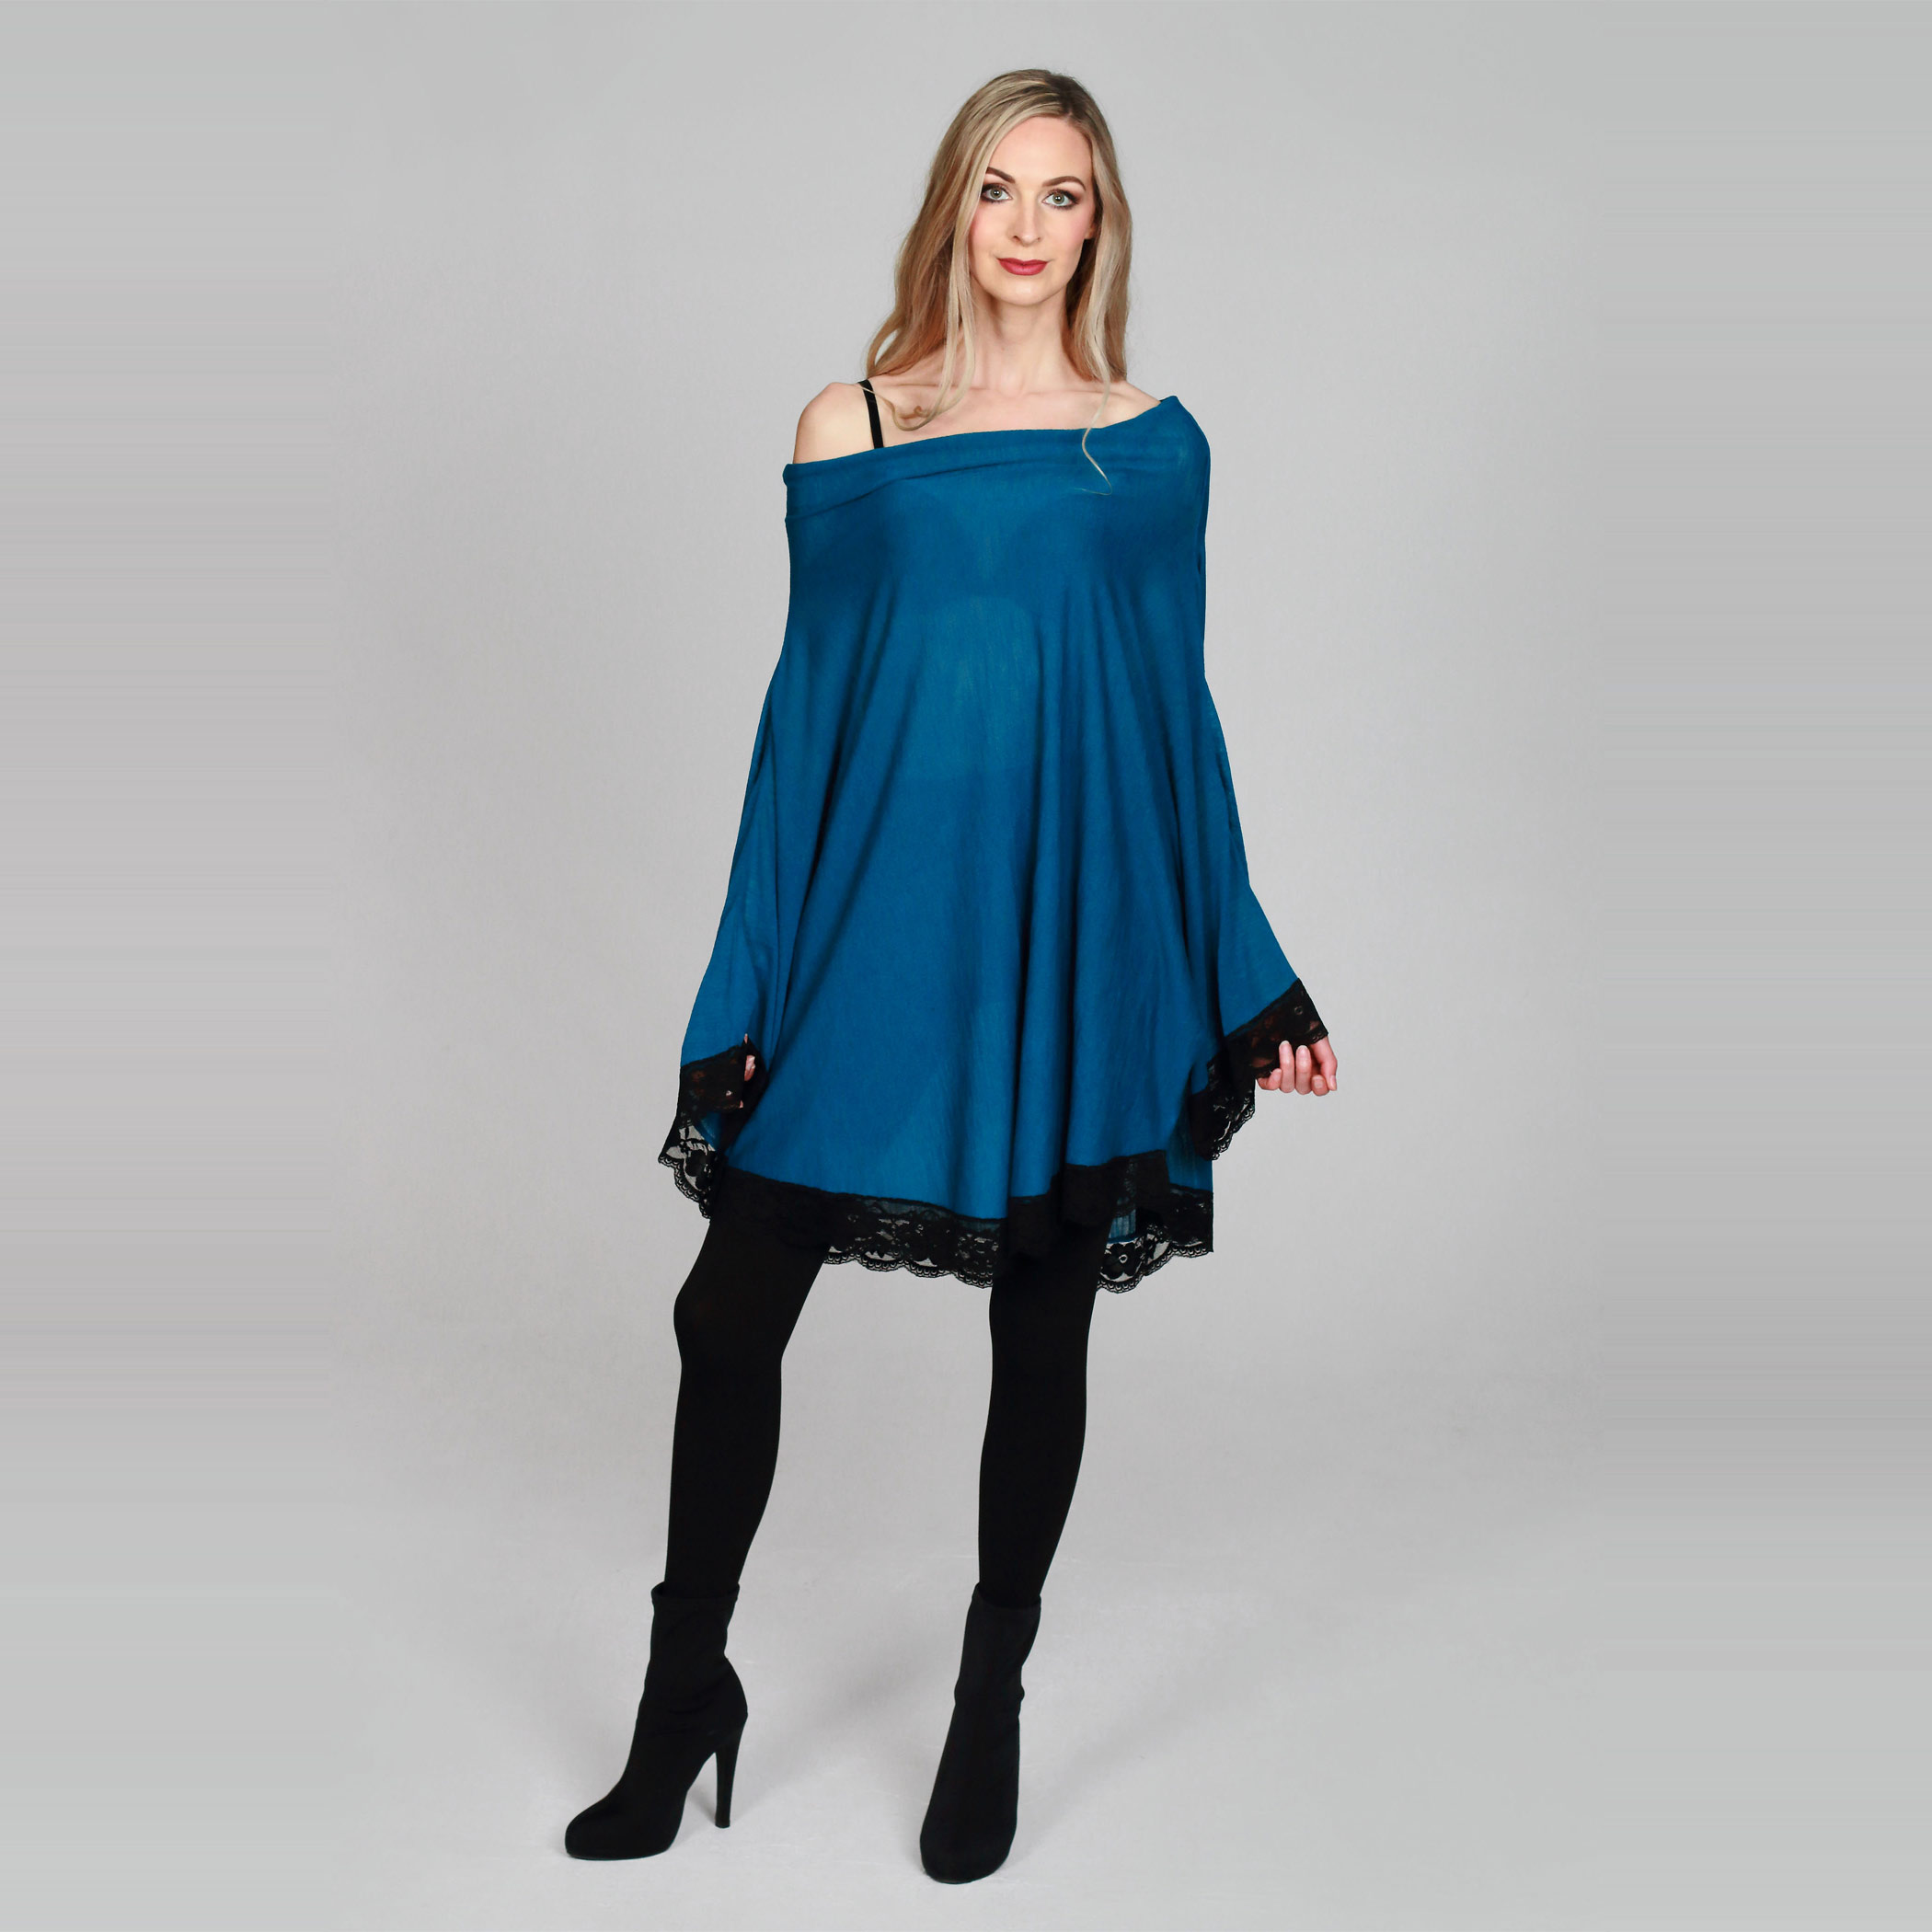 Teal Knit Dress/Poncho